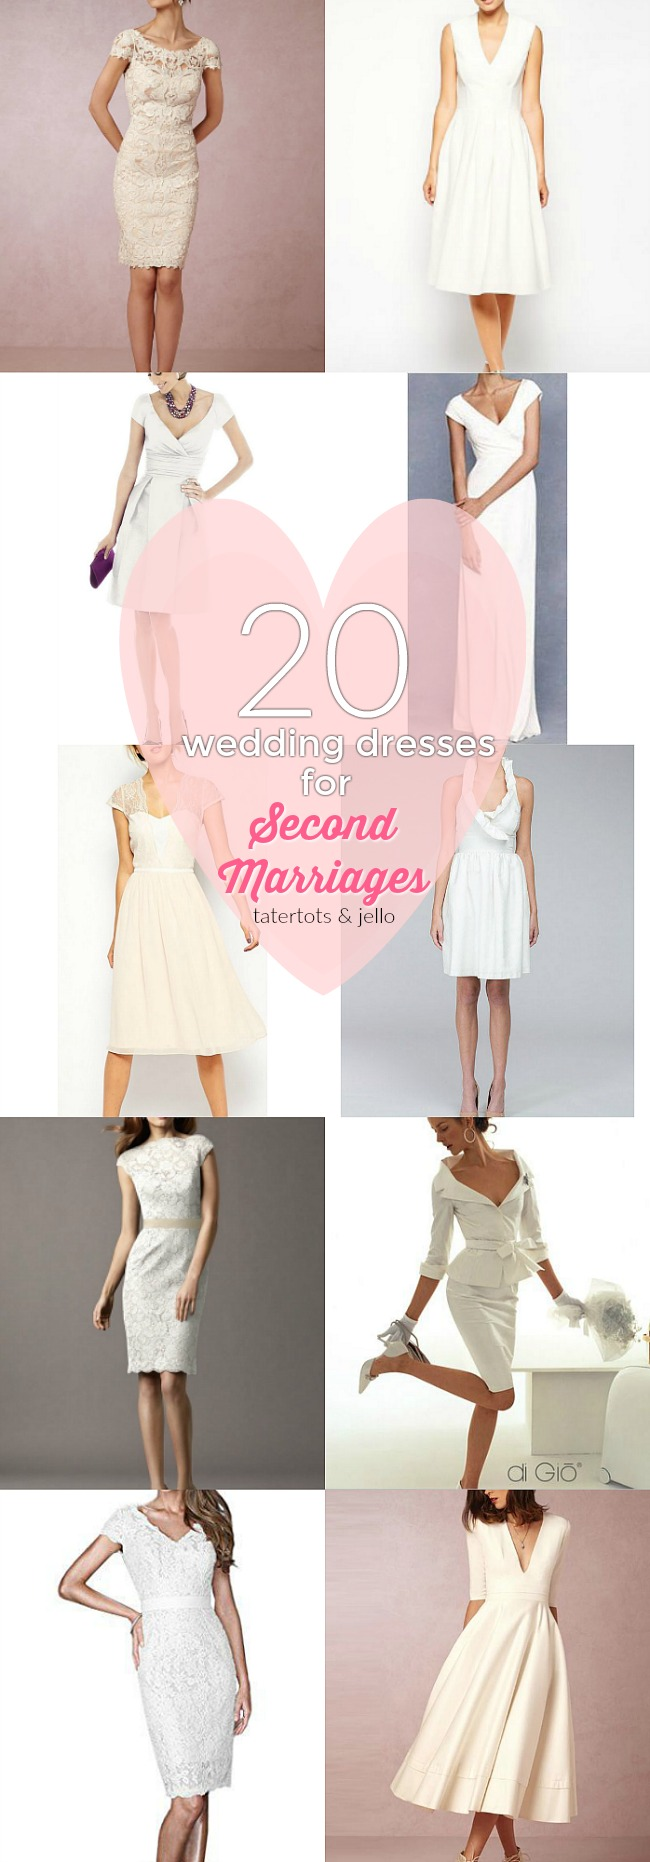 20 Wedding Dresses Second Wedding Courthouse Wedding